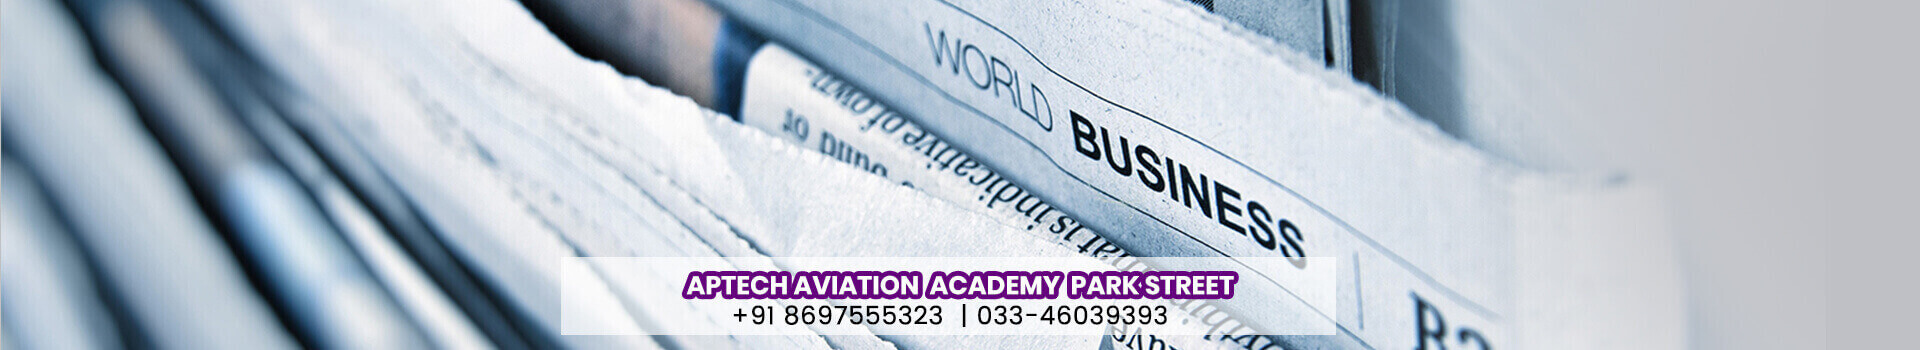 aviation industry news